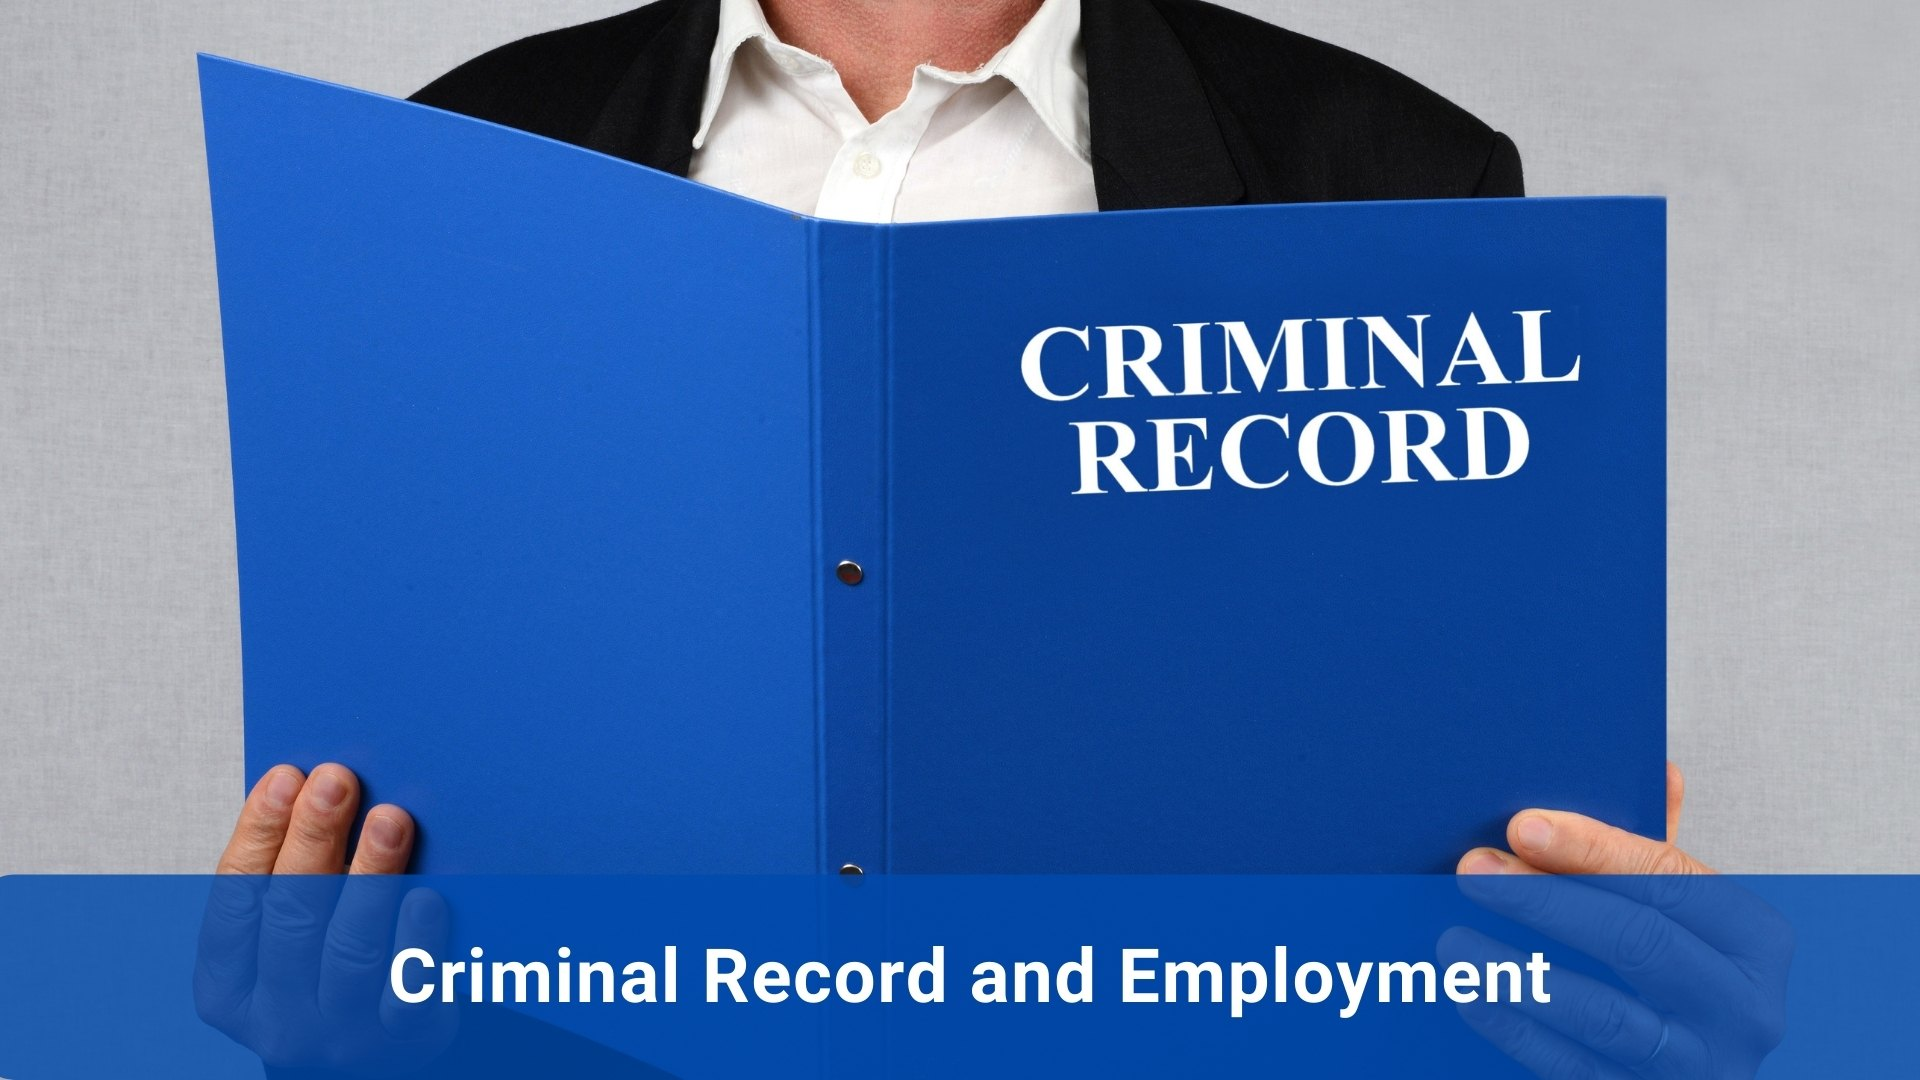 Criminal Record and Employment